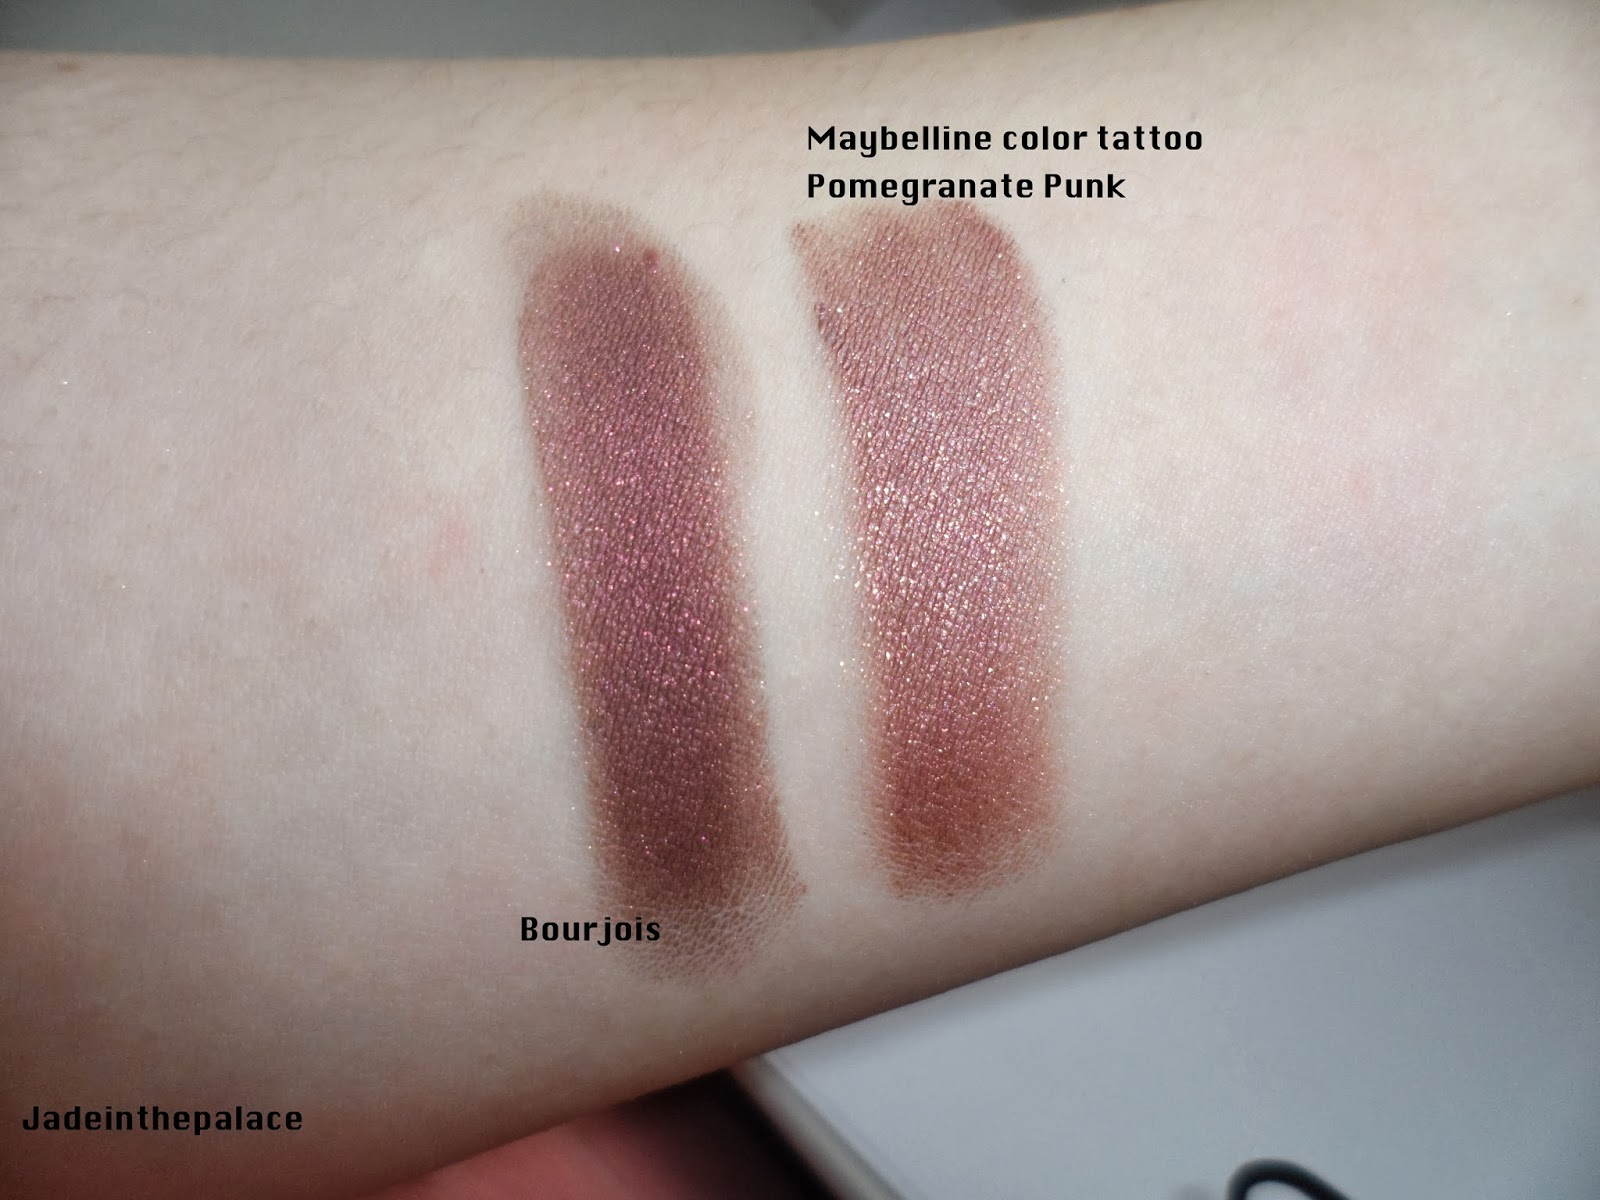 Jade in the palace prune nocturne for Maybelline color tattoo in pomegranate punk